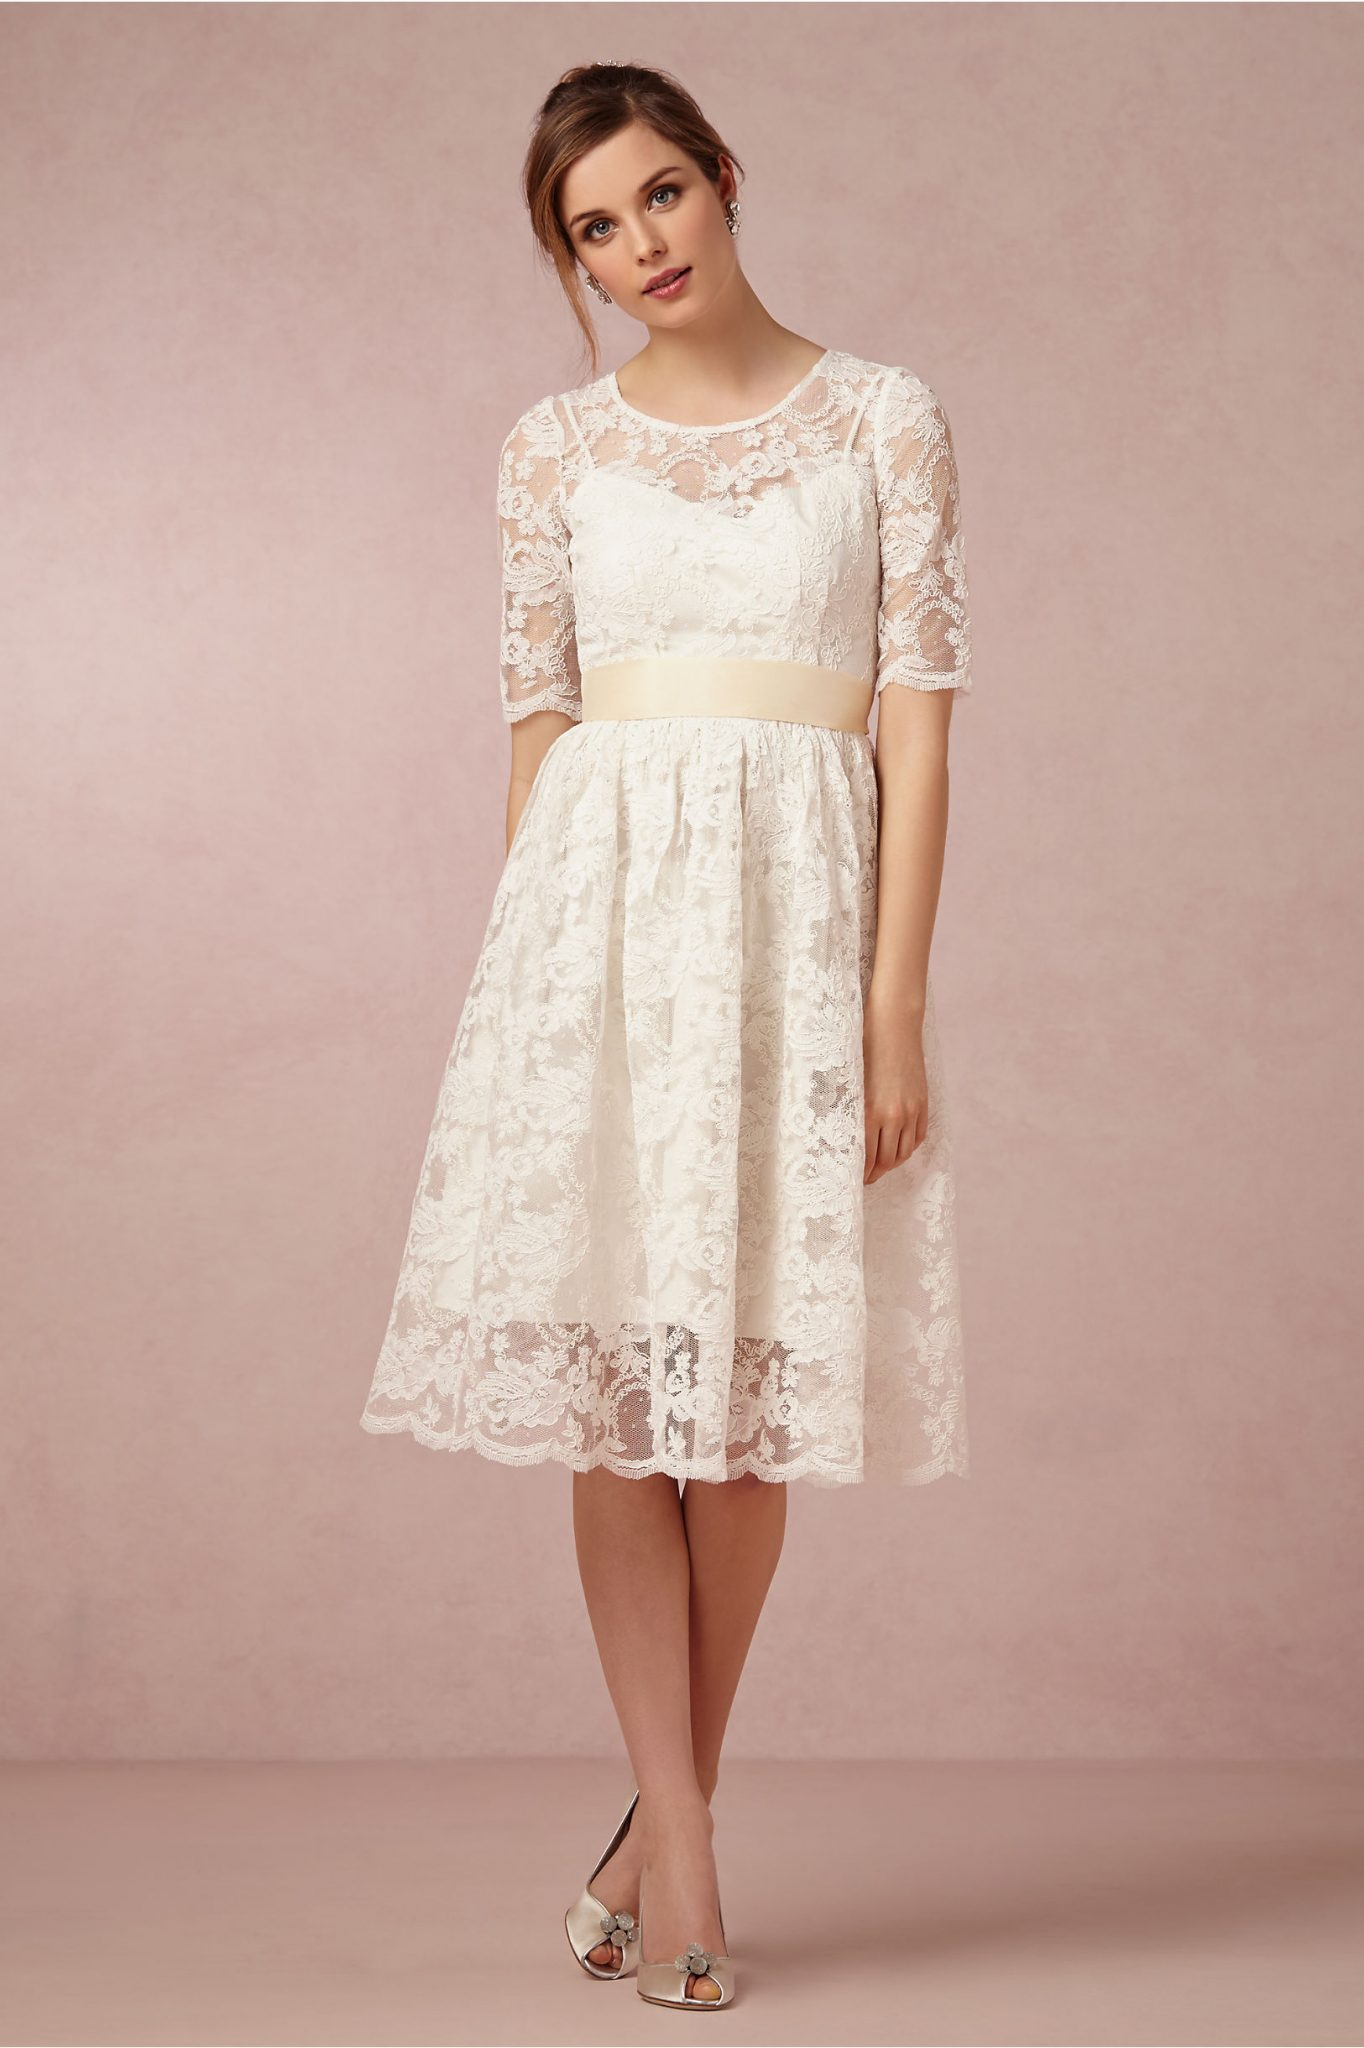 Courthouse Wedding Short Casual Wedding Dresses